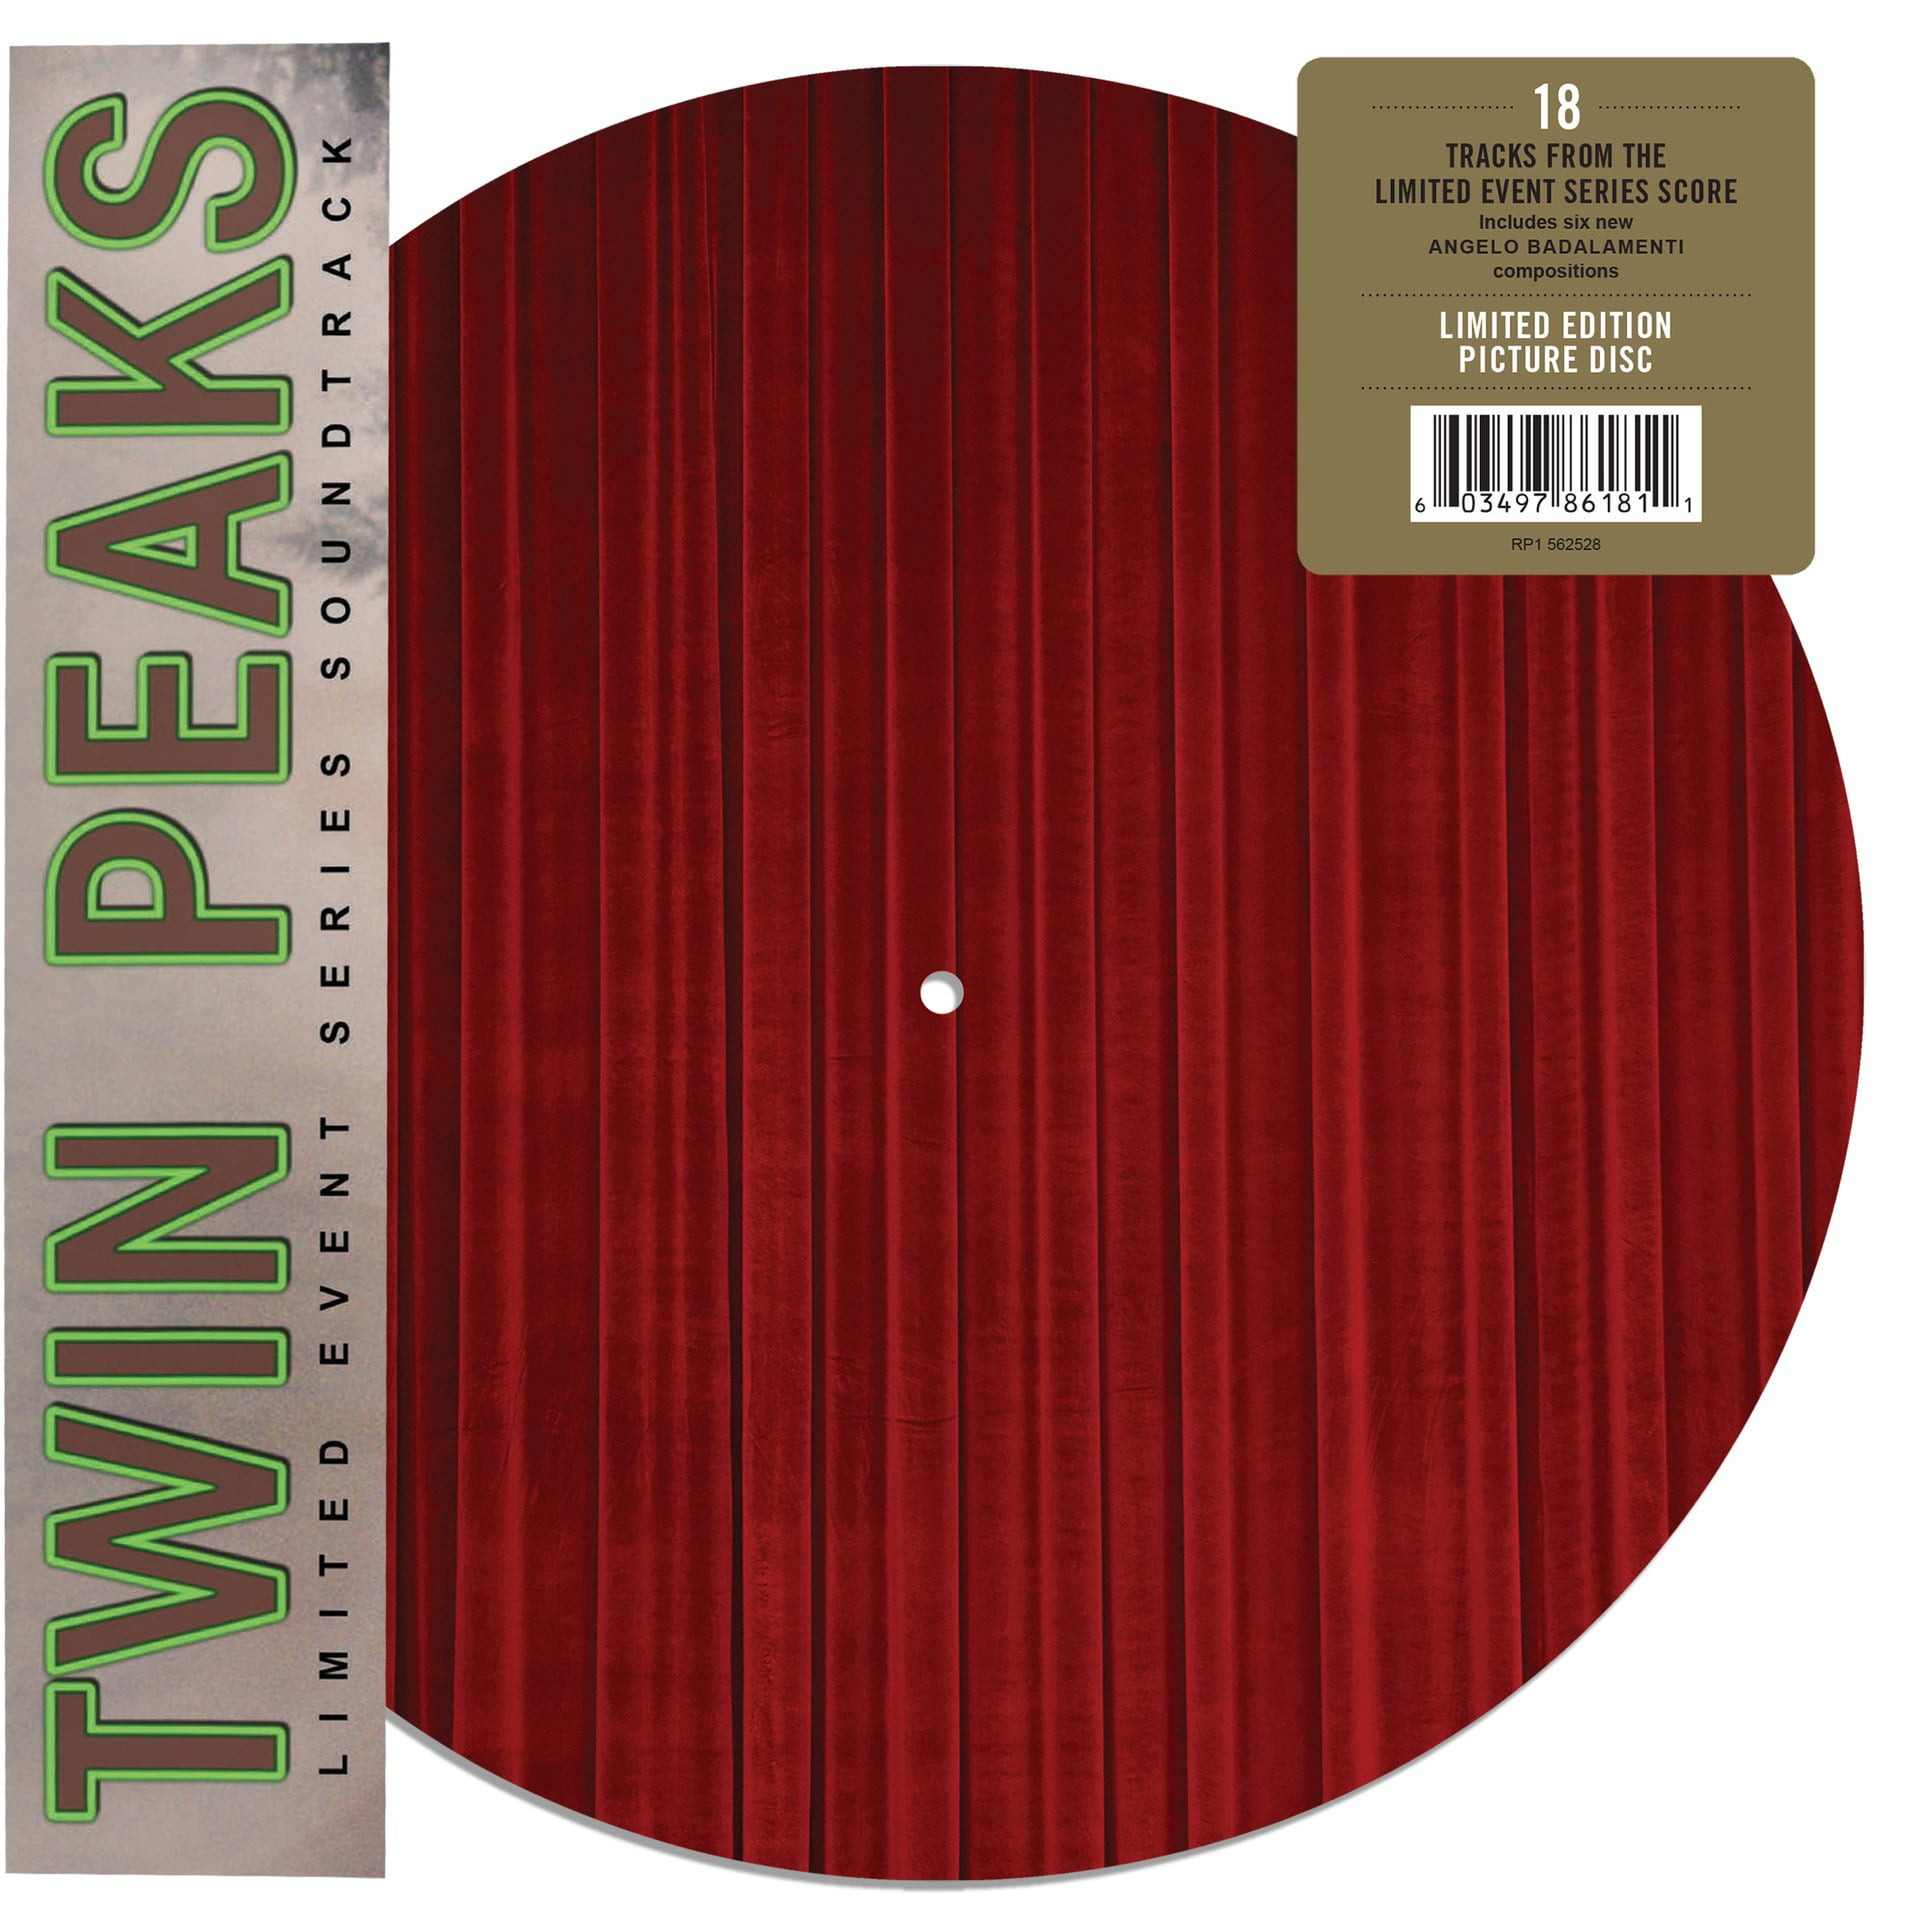 Twin Peaks Limited Event Series Soundtrack Record Store Day